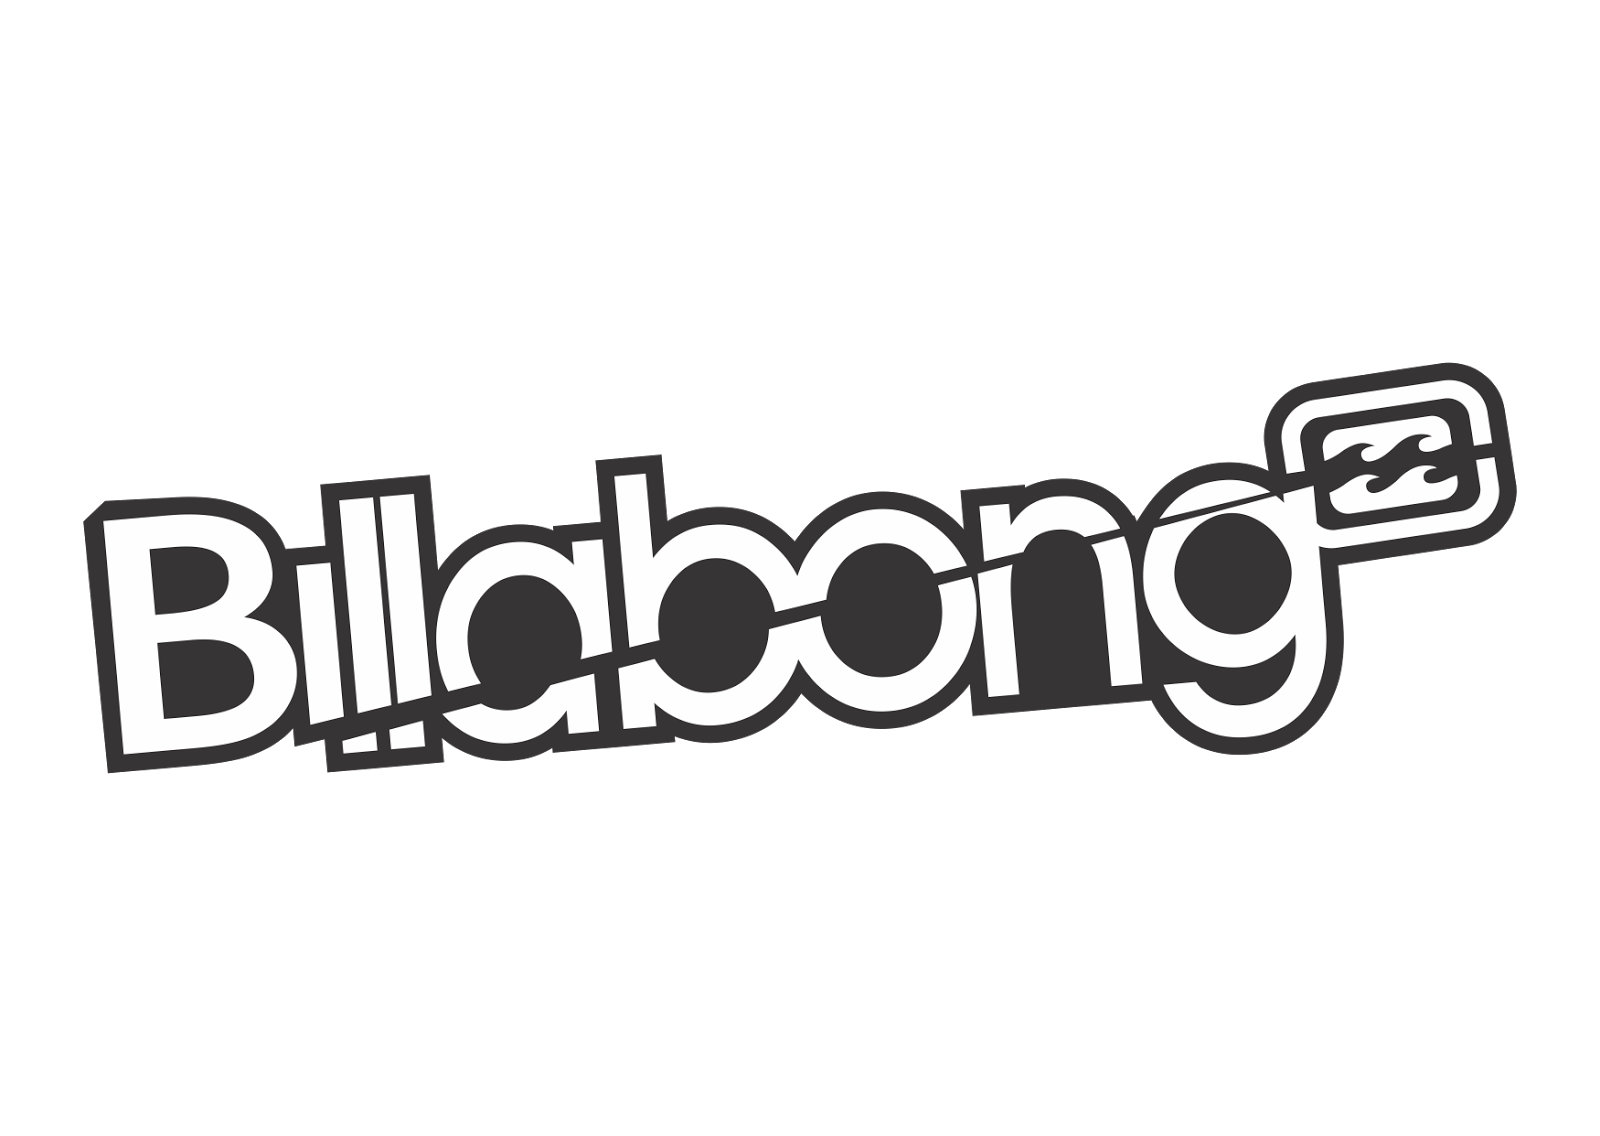 Billabong svg #15, Download drawings